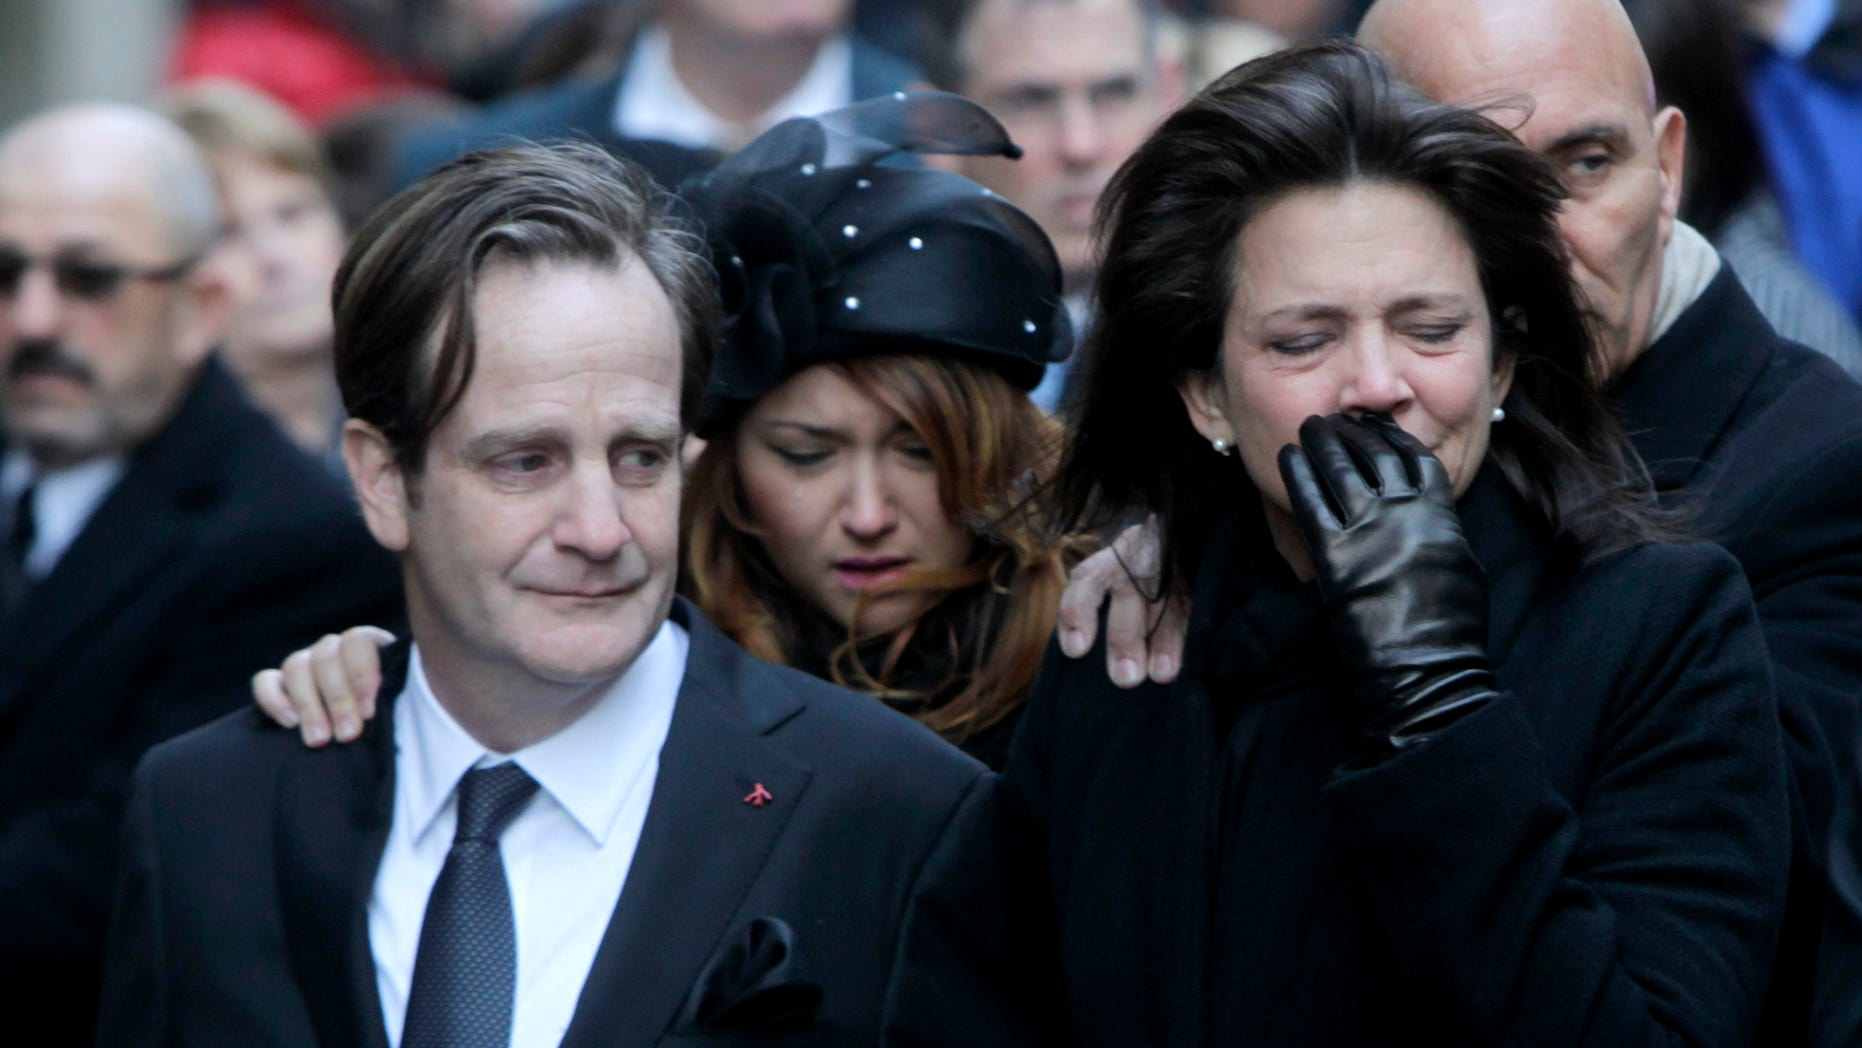 Jan. 5: Matthew Badger, left, and Madonna Badger, the parents of three children that were killed in a fire, react as their caskets are carried into a church during the funeral in New York.